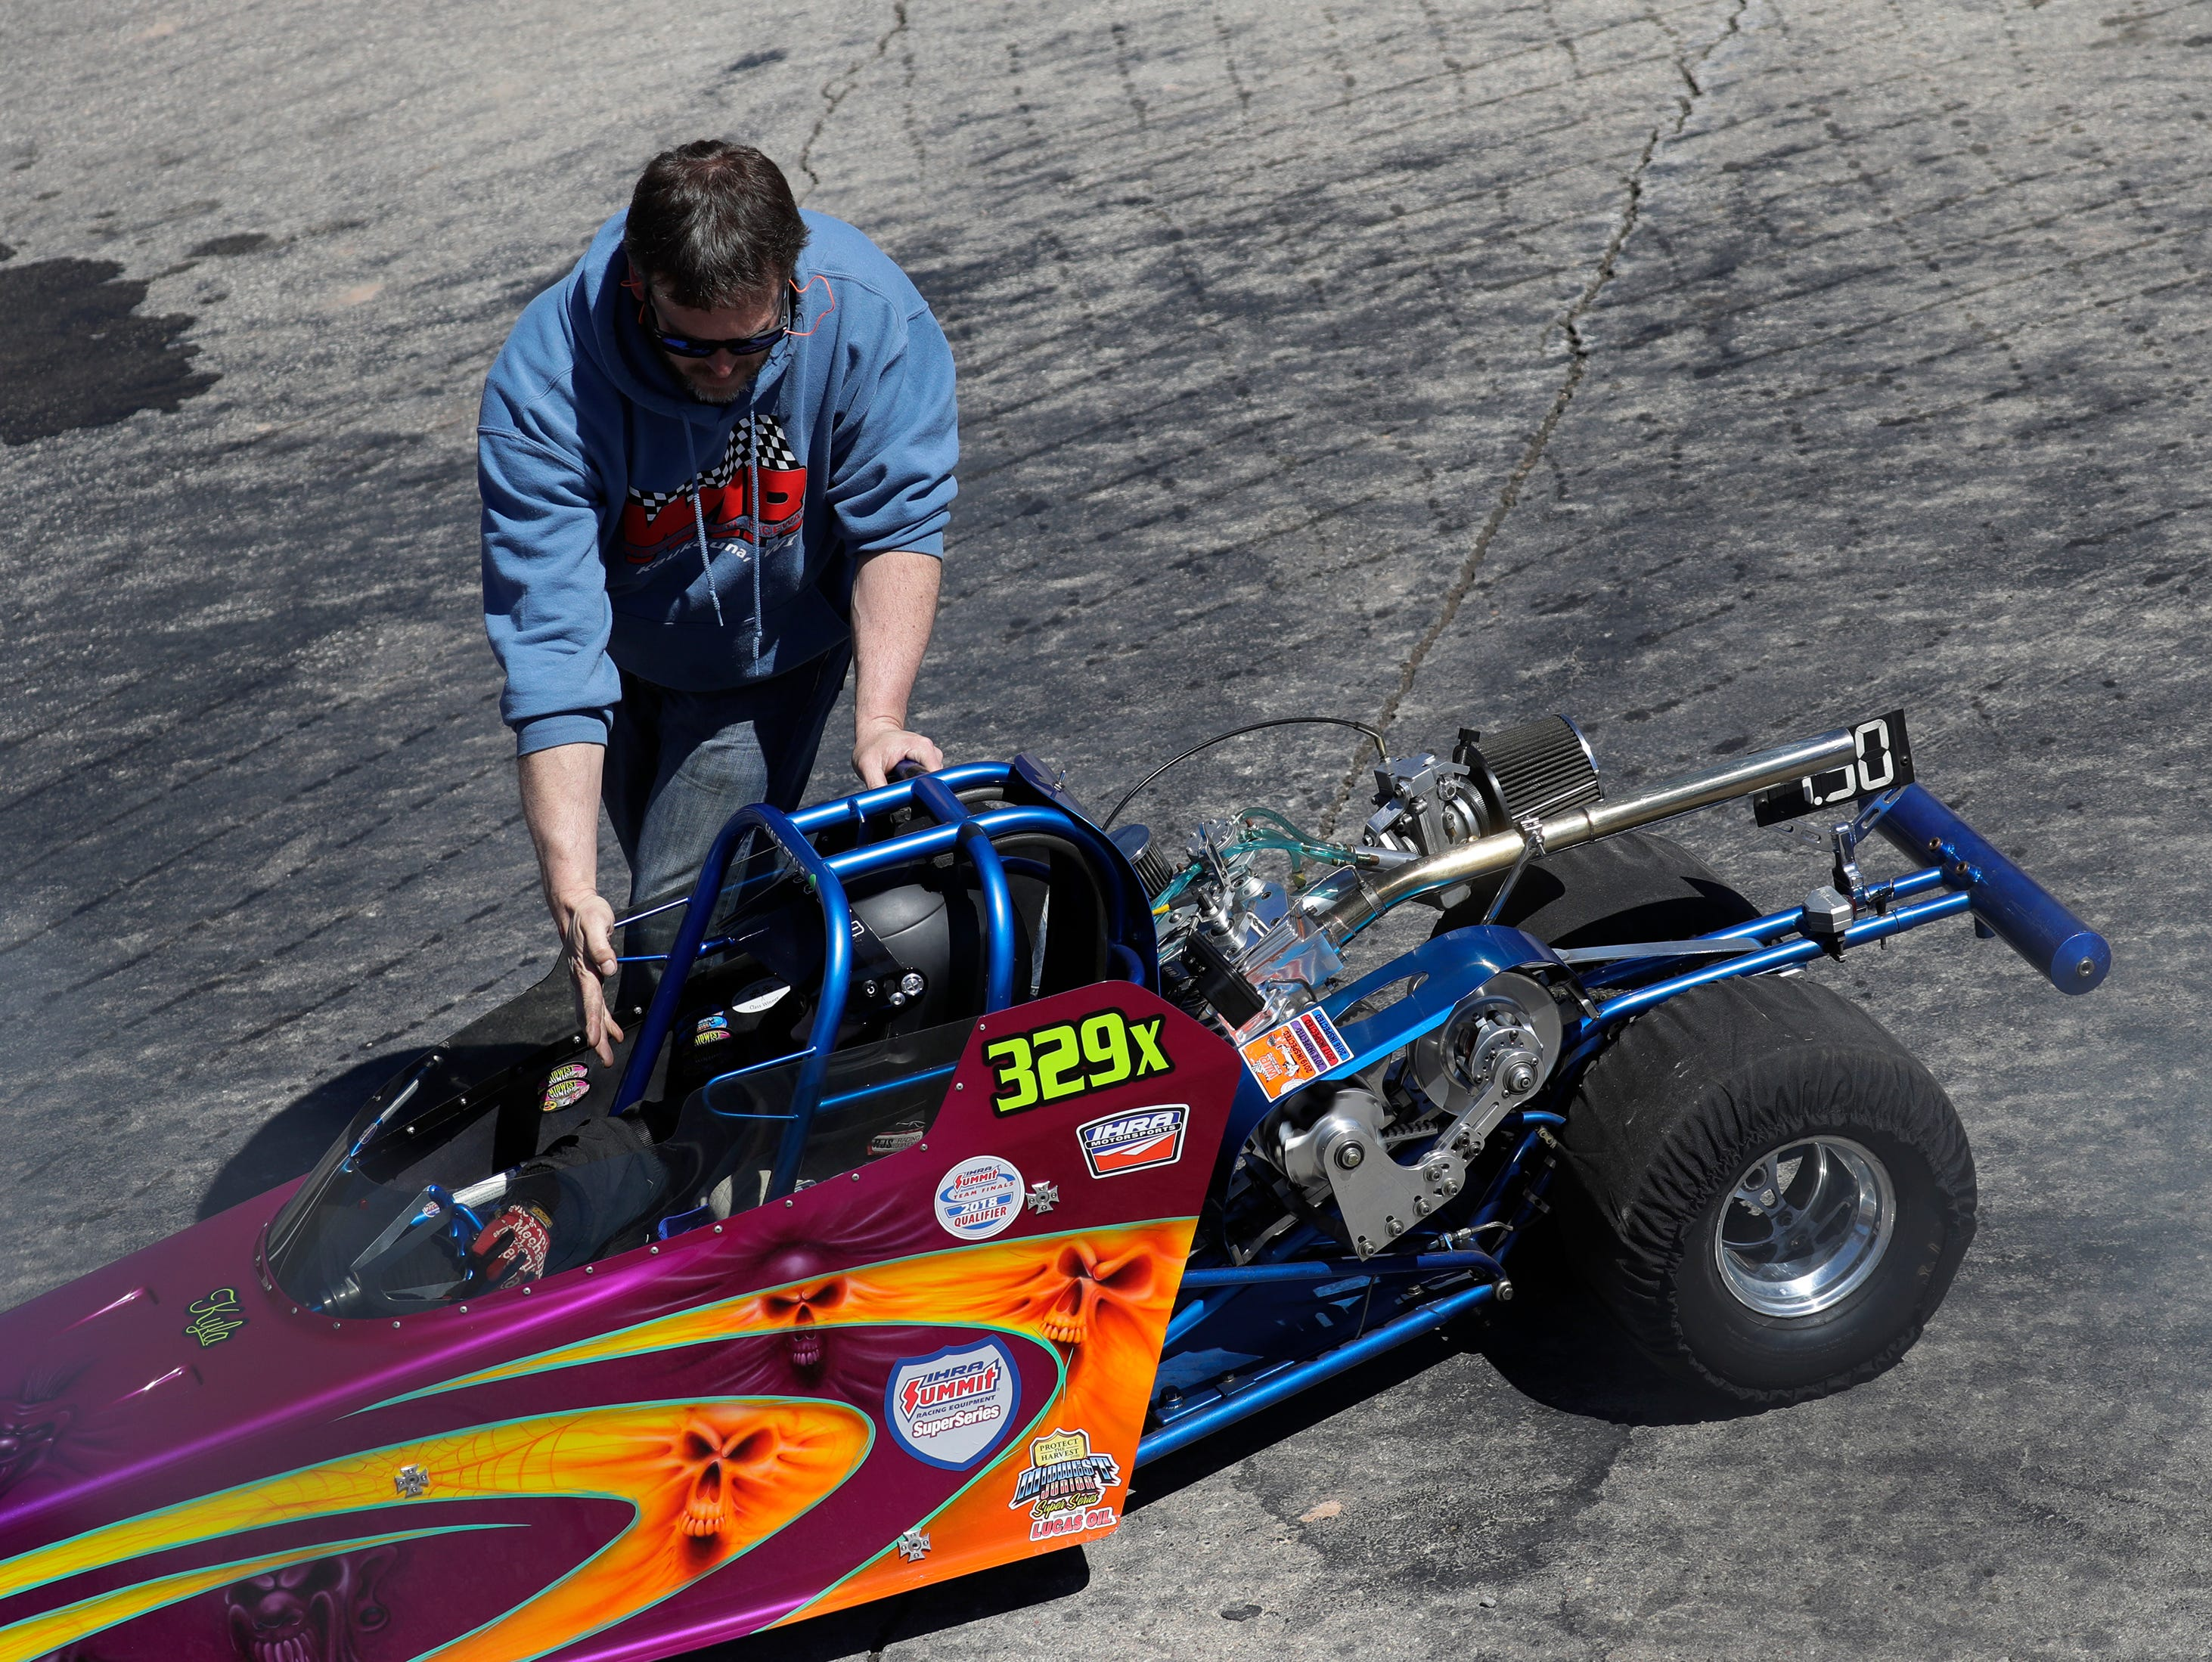 A junior racer is guided to the starting line for a test run during the Wisconsin International Raceway Strip Test & Tune event Saturday, April 20, 2019, in Kaukauna, Wis. Drivers spent the day getting safety inspections, tune ups and test runs on the track for the upcoming season.